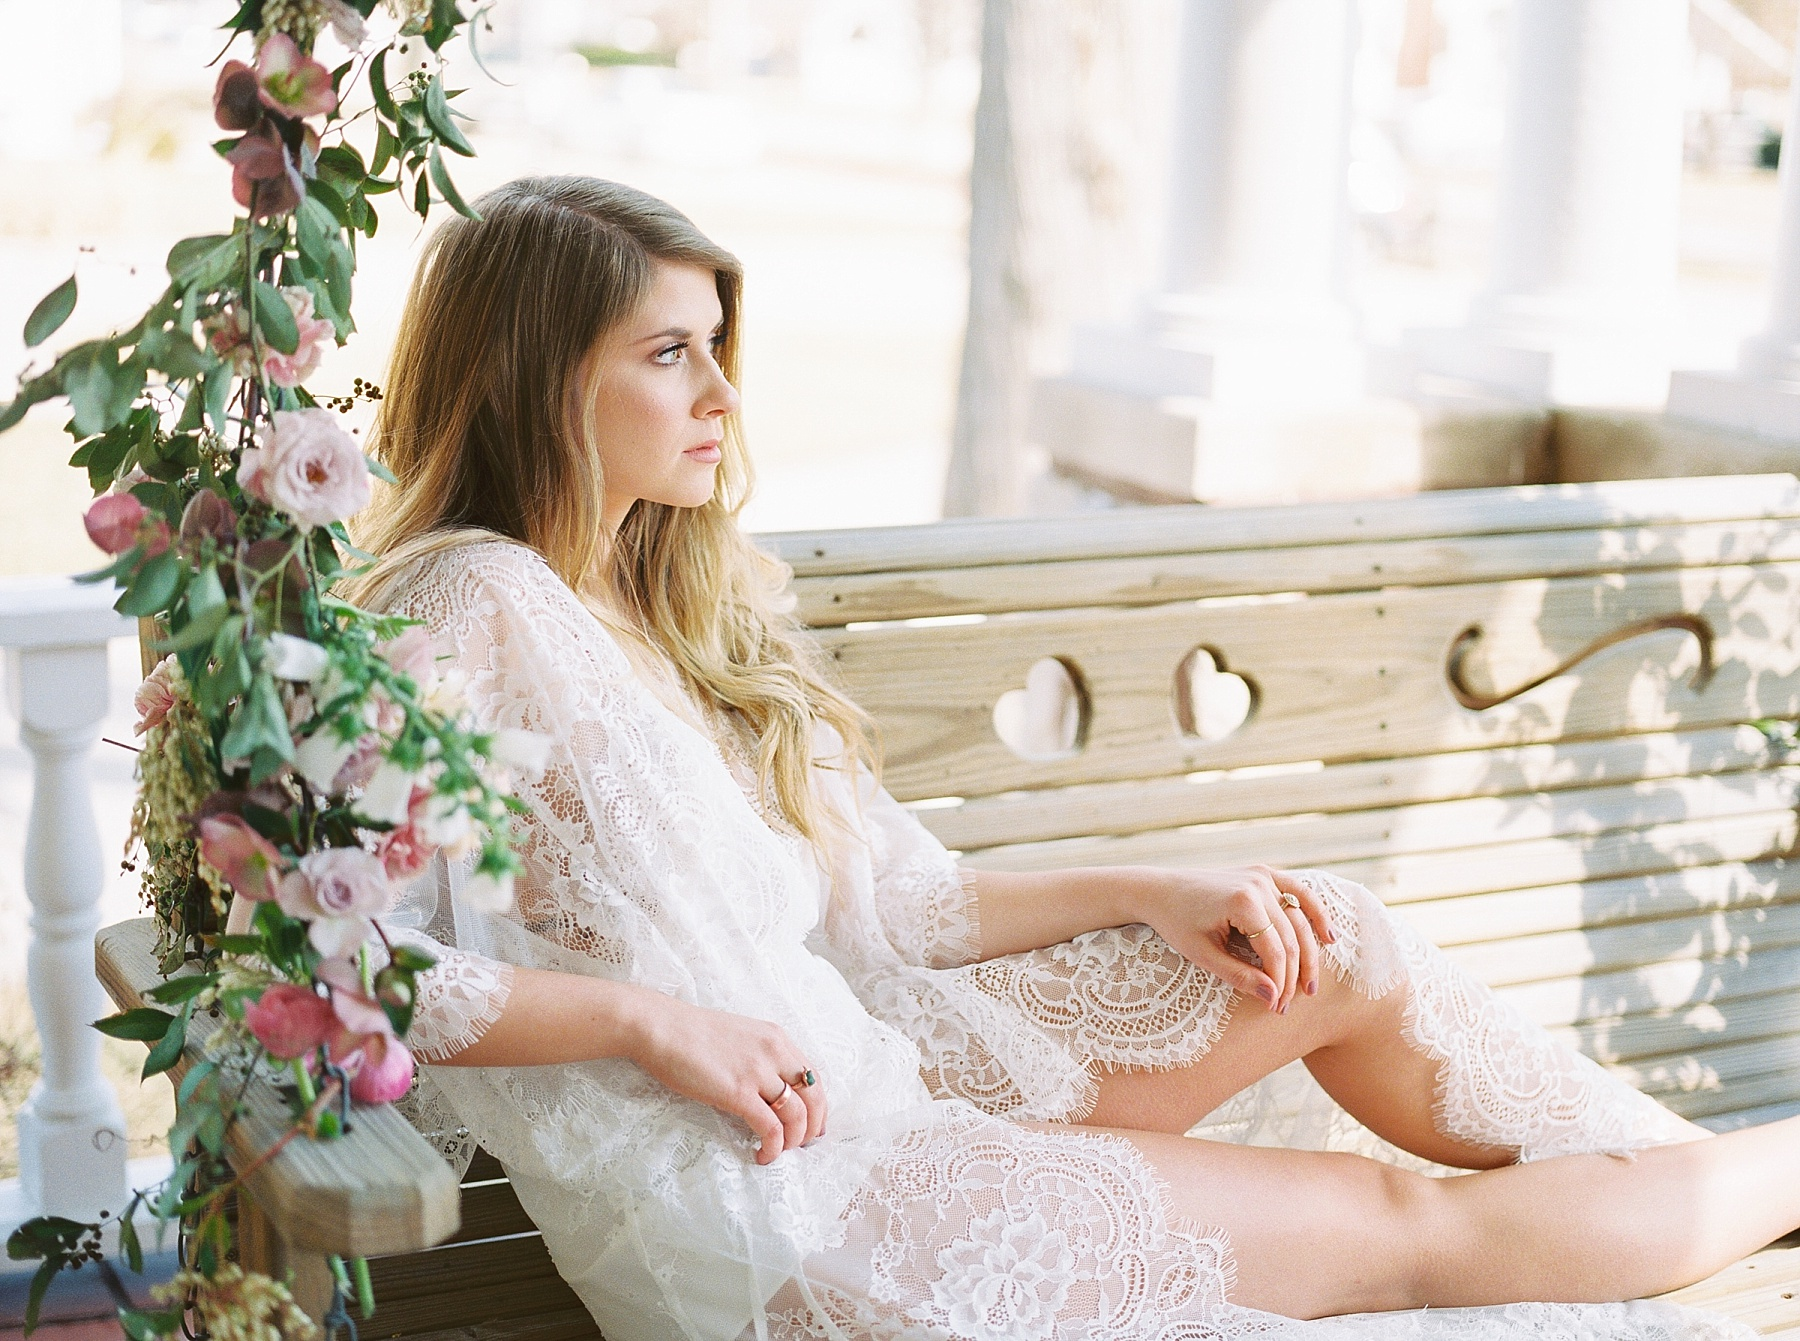 Natural, Intimate, and Organic Bridal Session on Steps of Century Old Bed and Breakfast by Kelsi Kliethermes Photography Best Missouri and Maui Wedding Photographer_0009.jpg